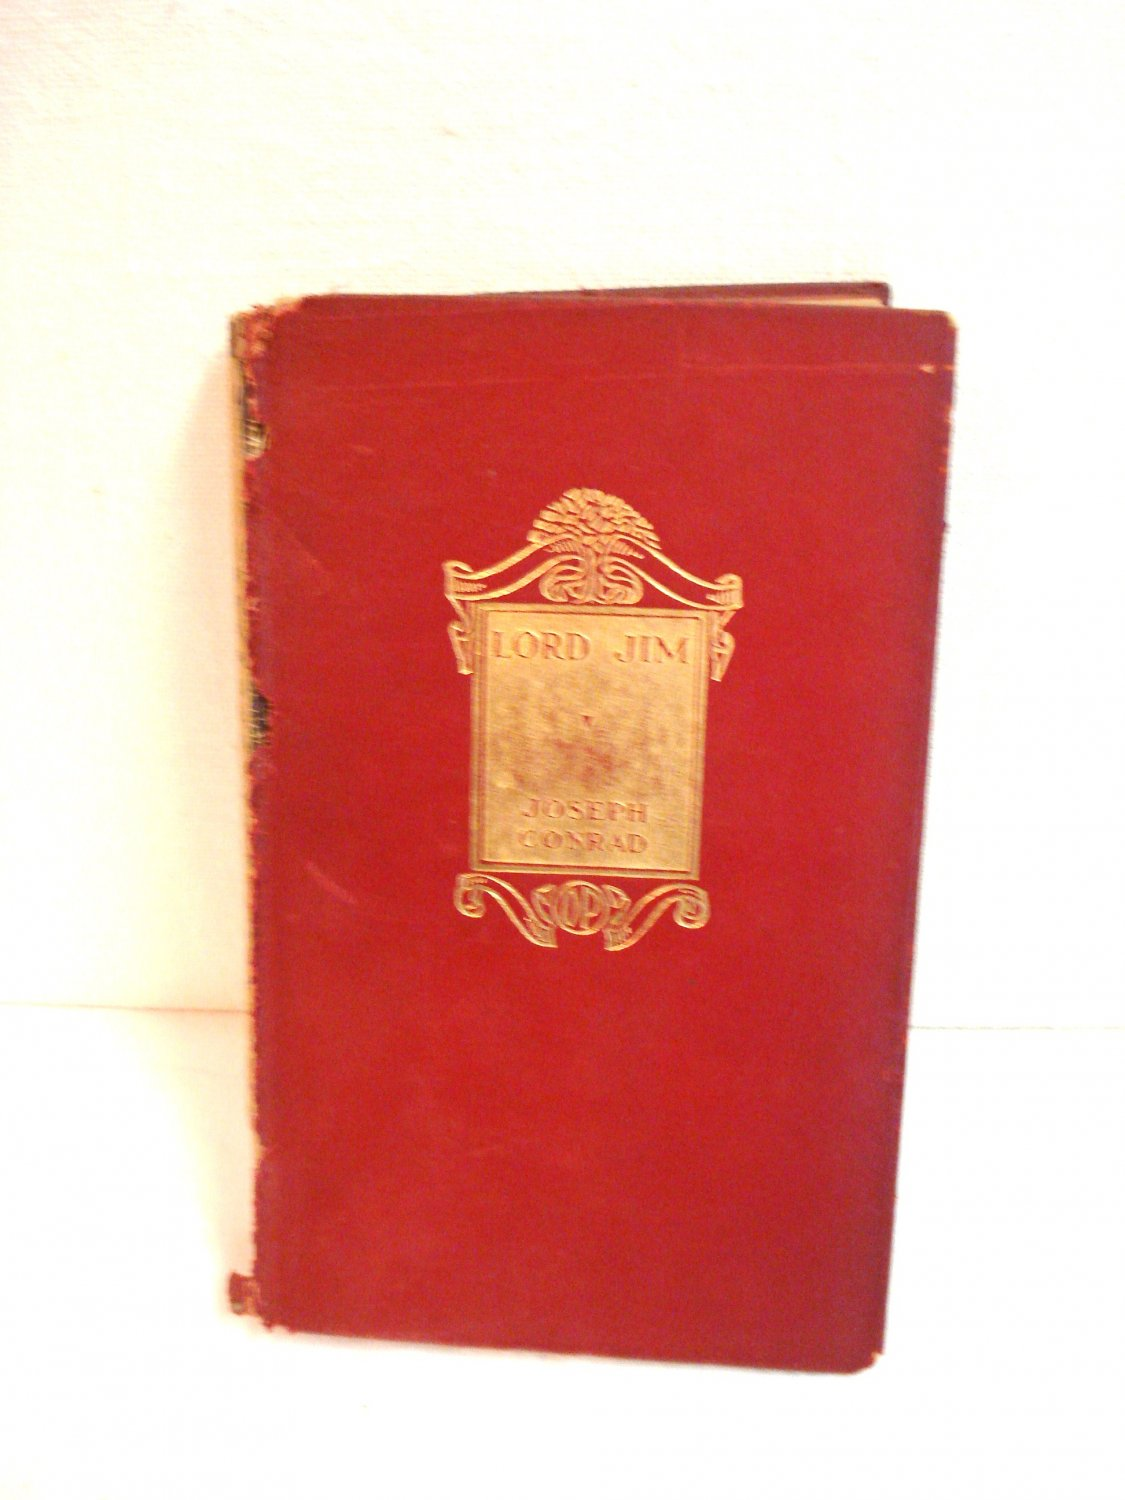 Lord Jim A Romance Joseph Conrad Doubleday Page 1922 red leather HB  AL1508